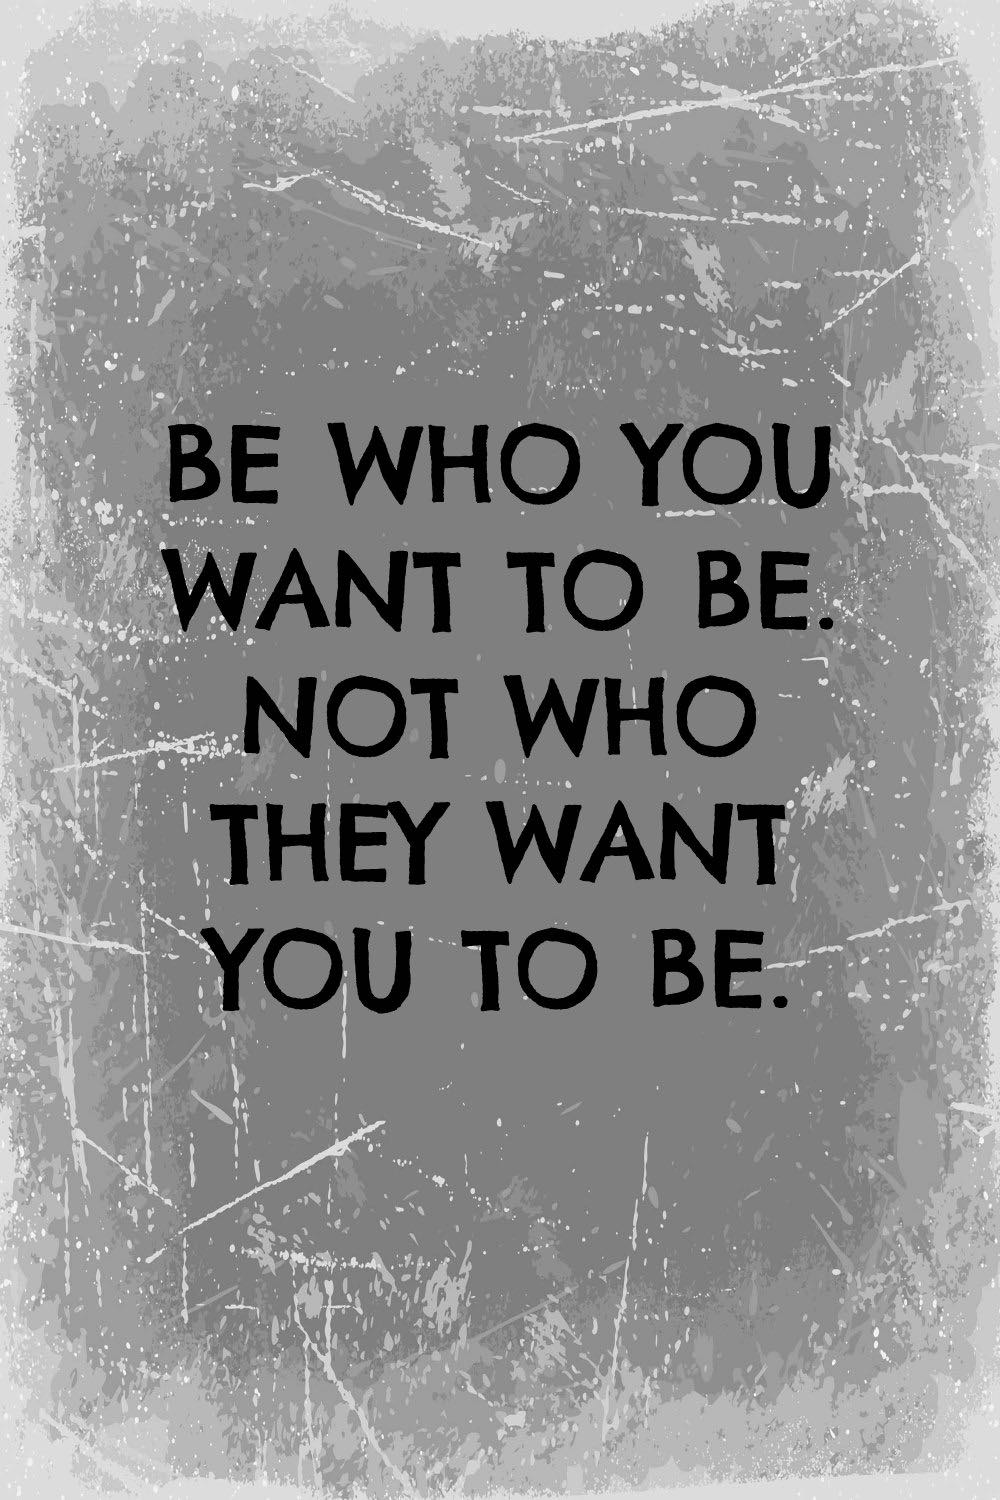 Inspirational quotes about being who you want to be